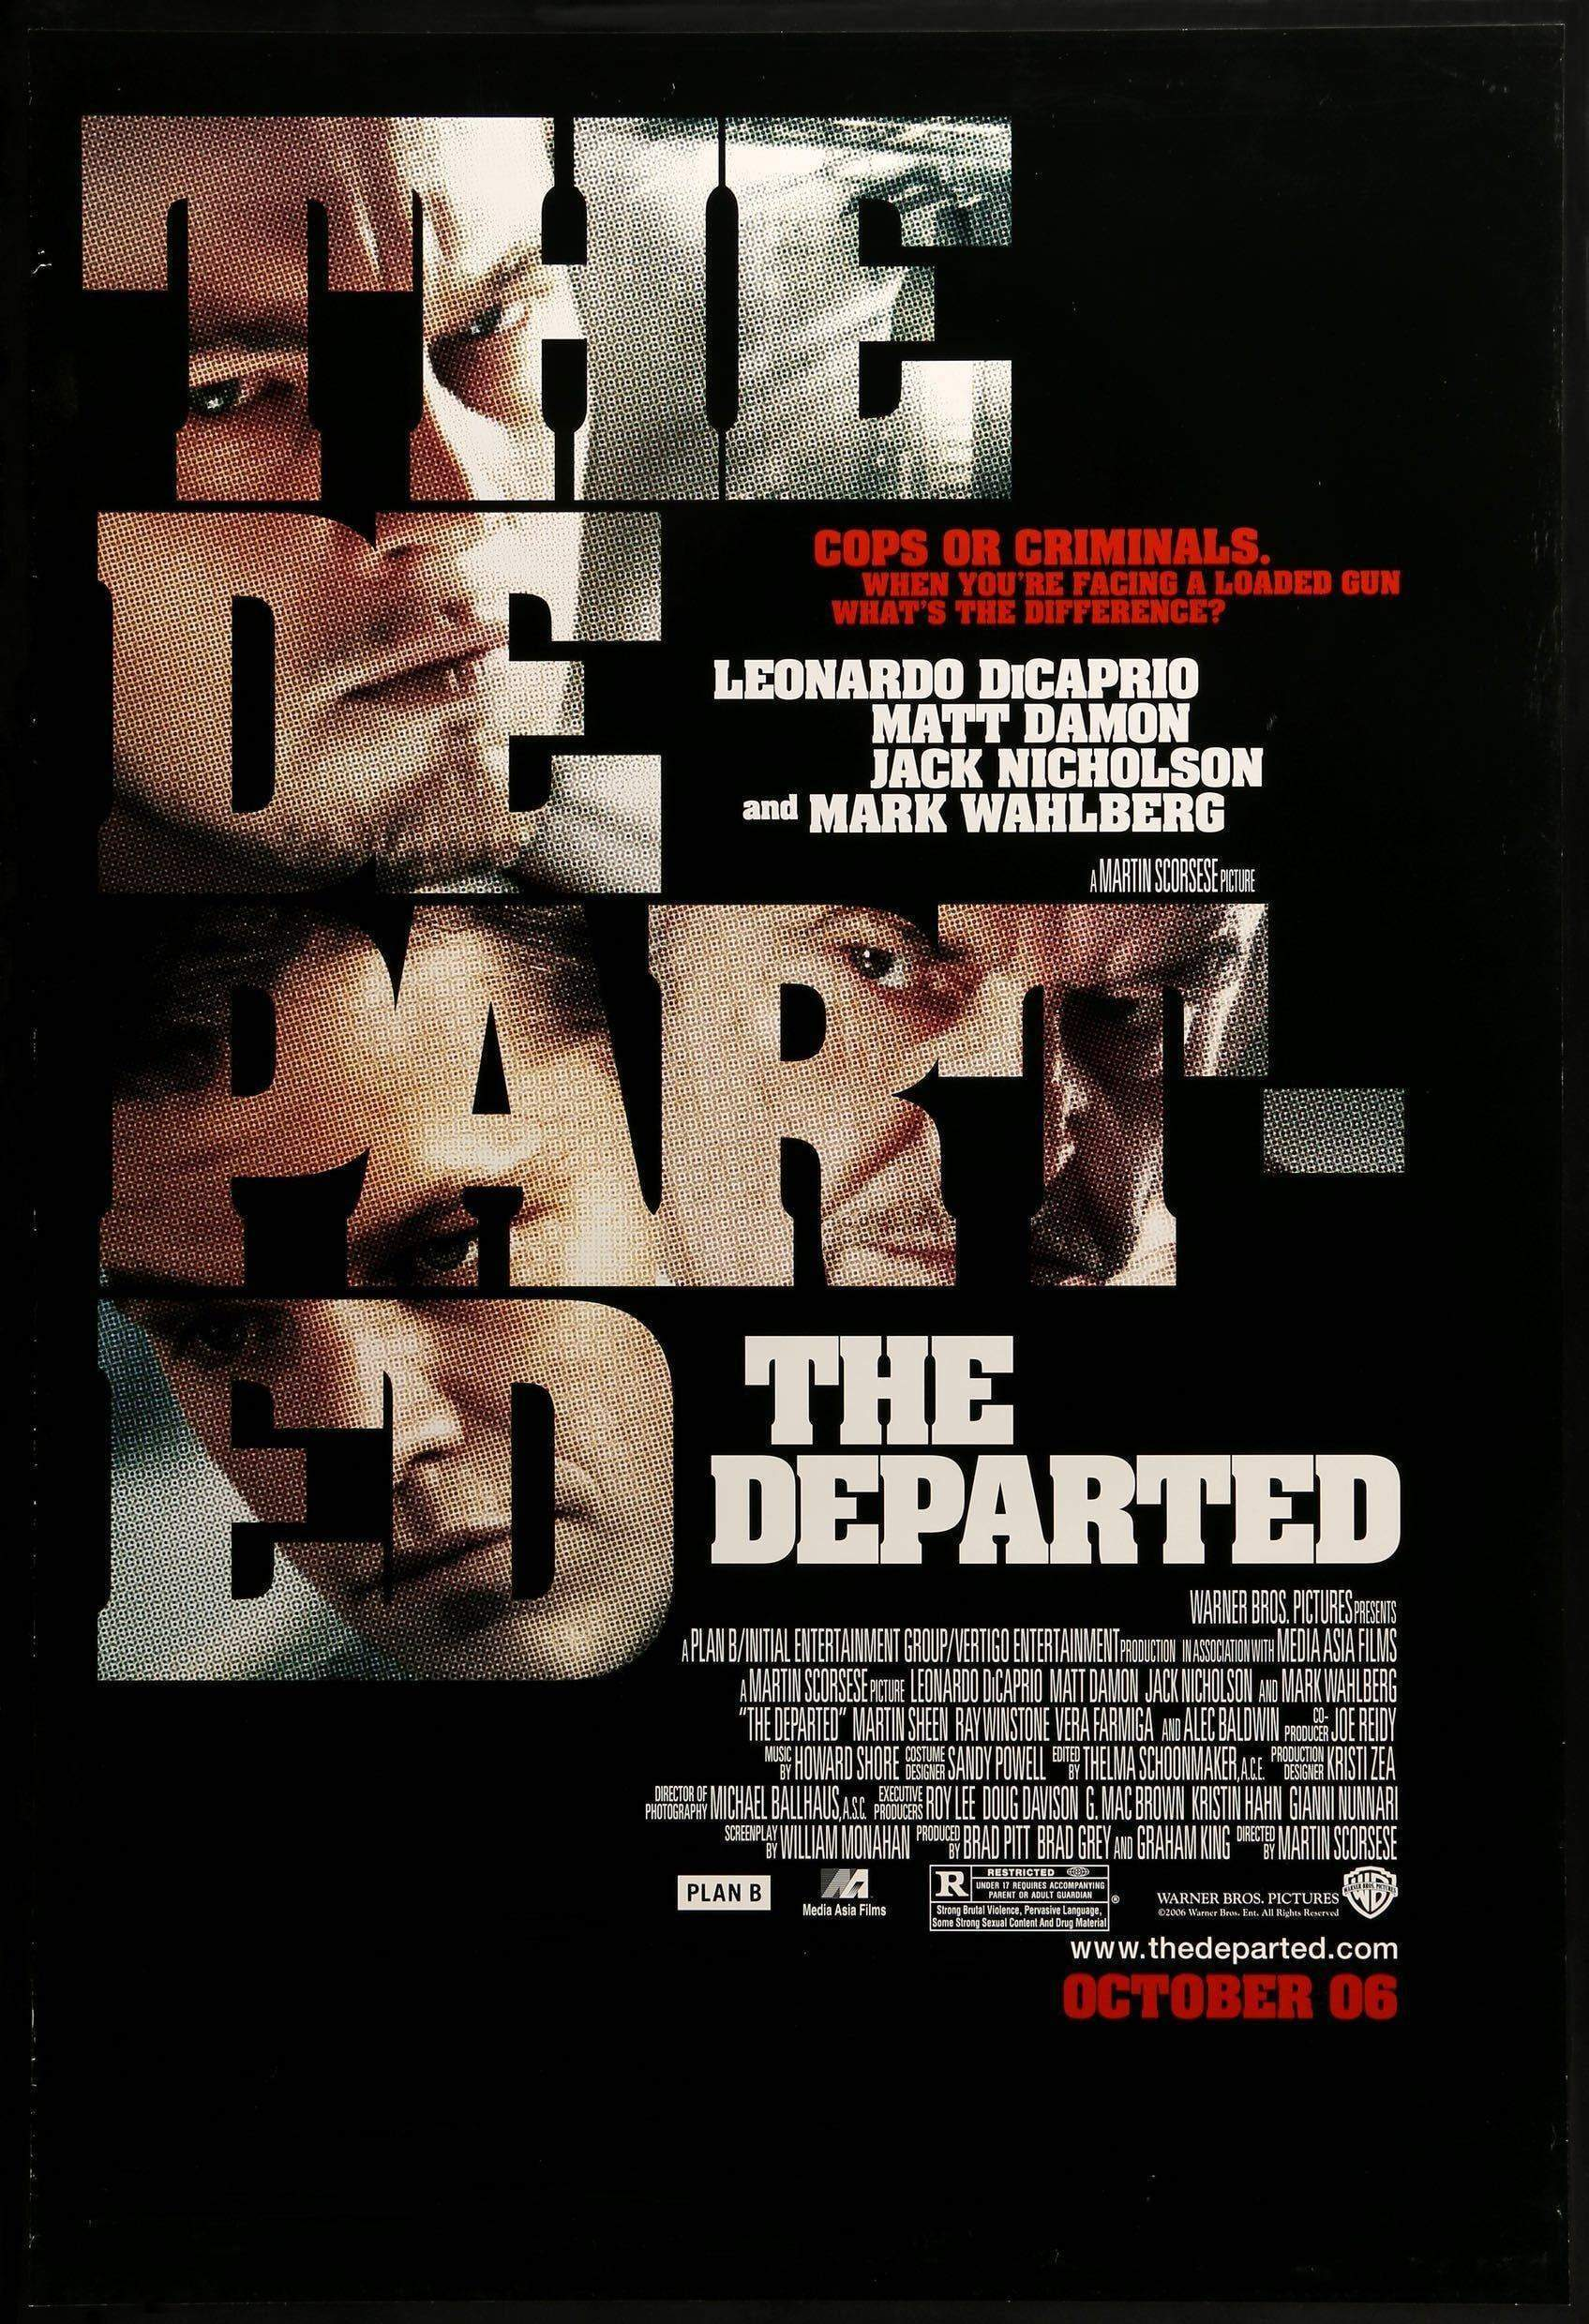 The Departed Premieres